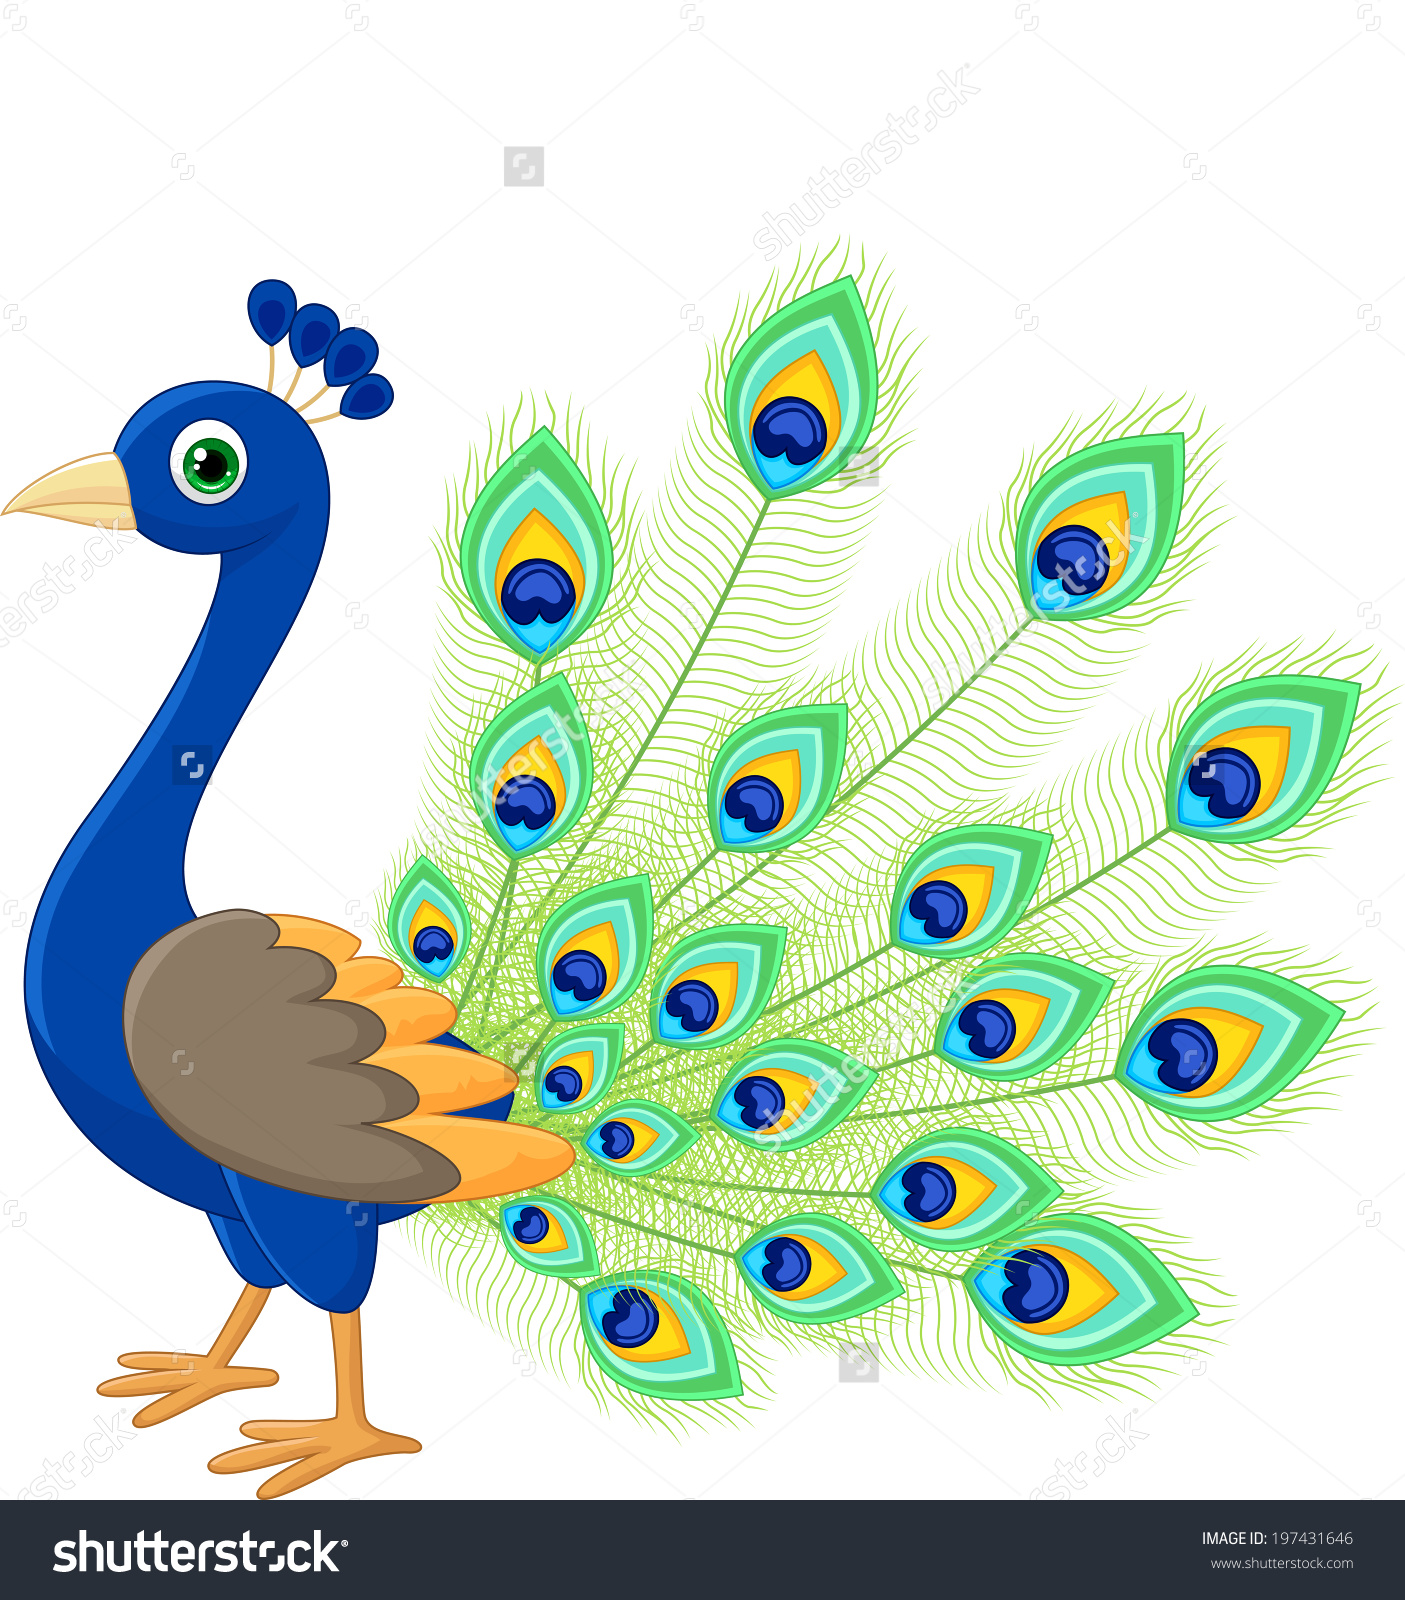 Feather at getdrawings com. Peacock clipart